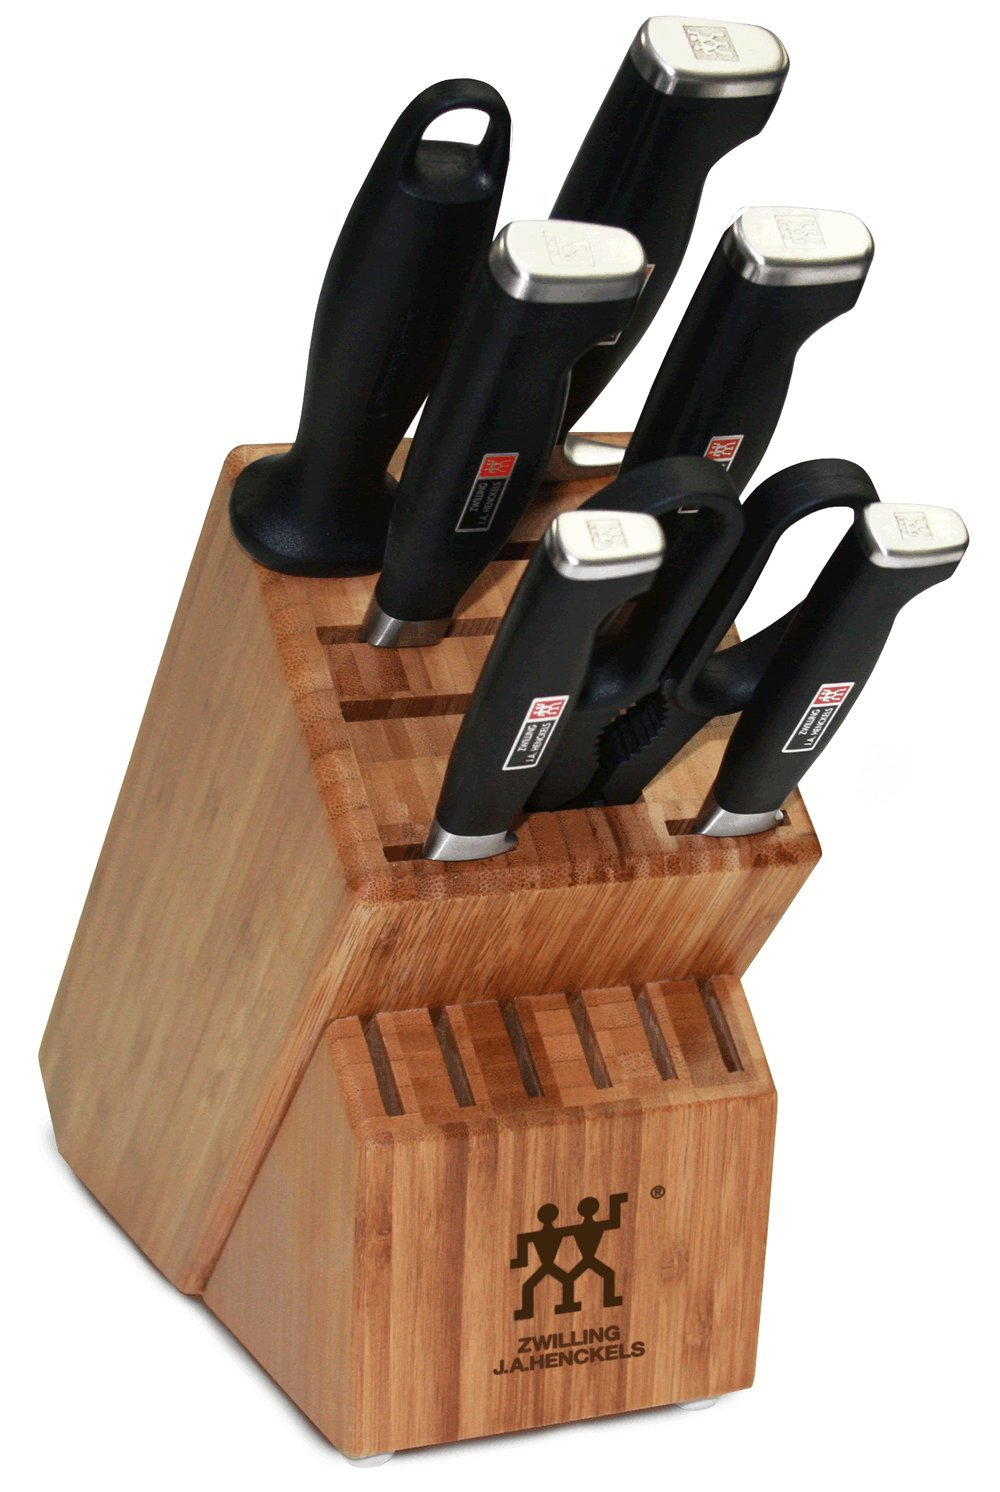 Zwilling J.A. Henckels Twin Four Star II 8-Piece Knife Set with Block